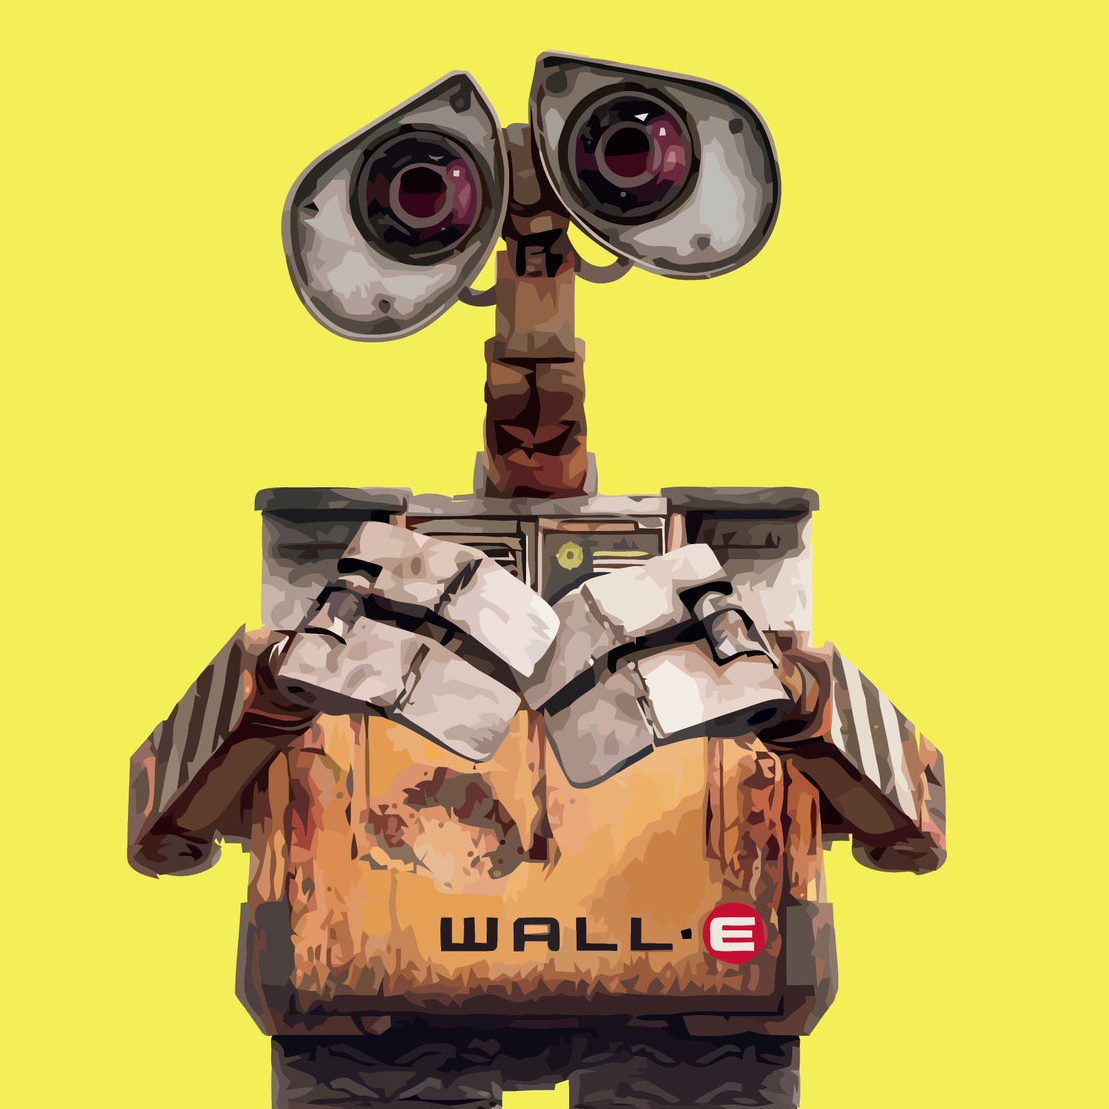 Copy of WALL-E